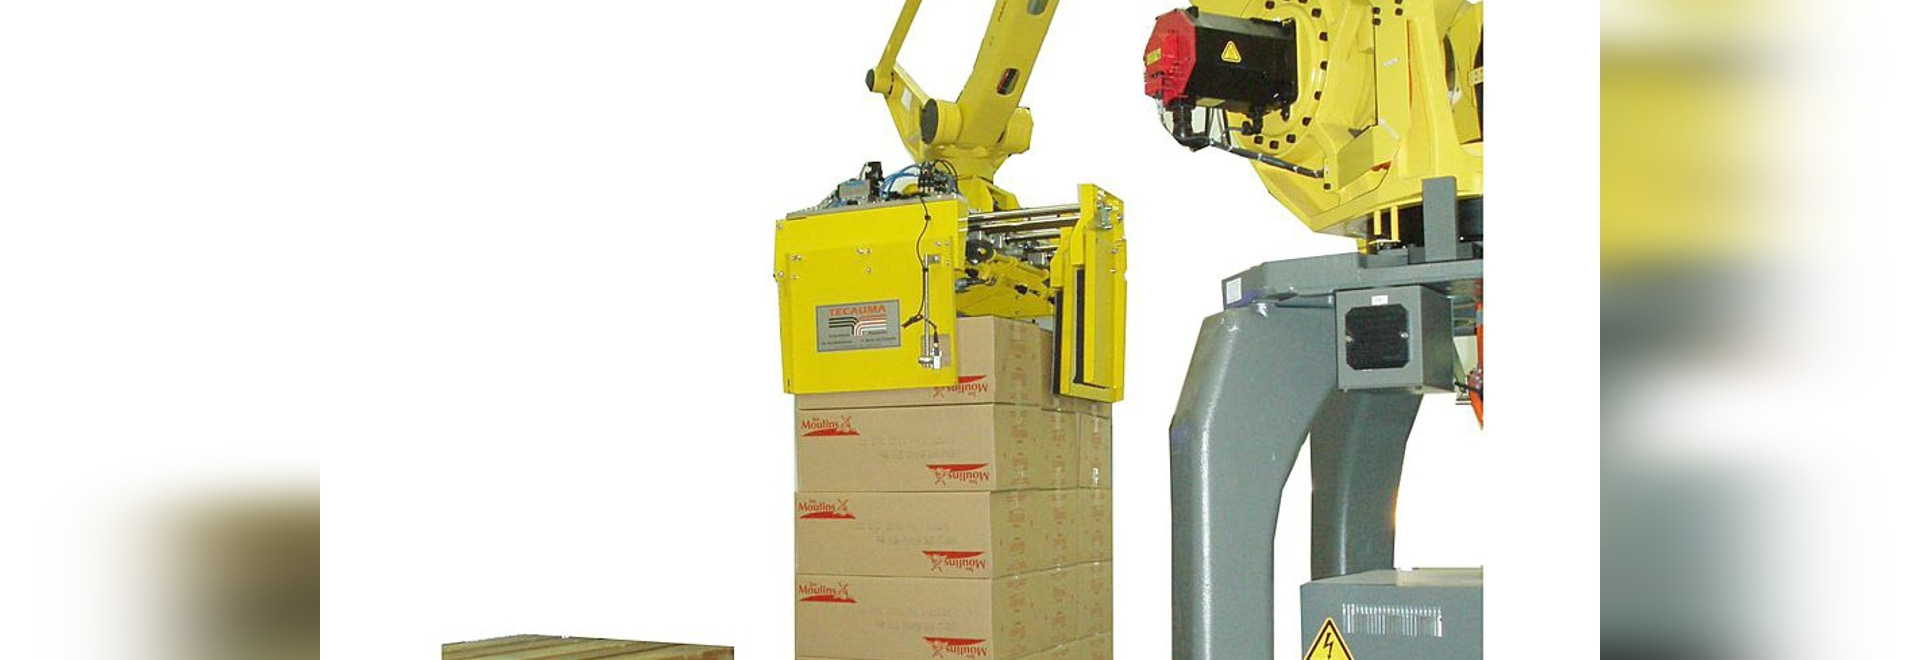 Robotic palletizing cell for boxes and bags